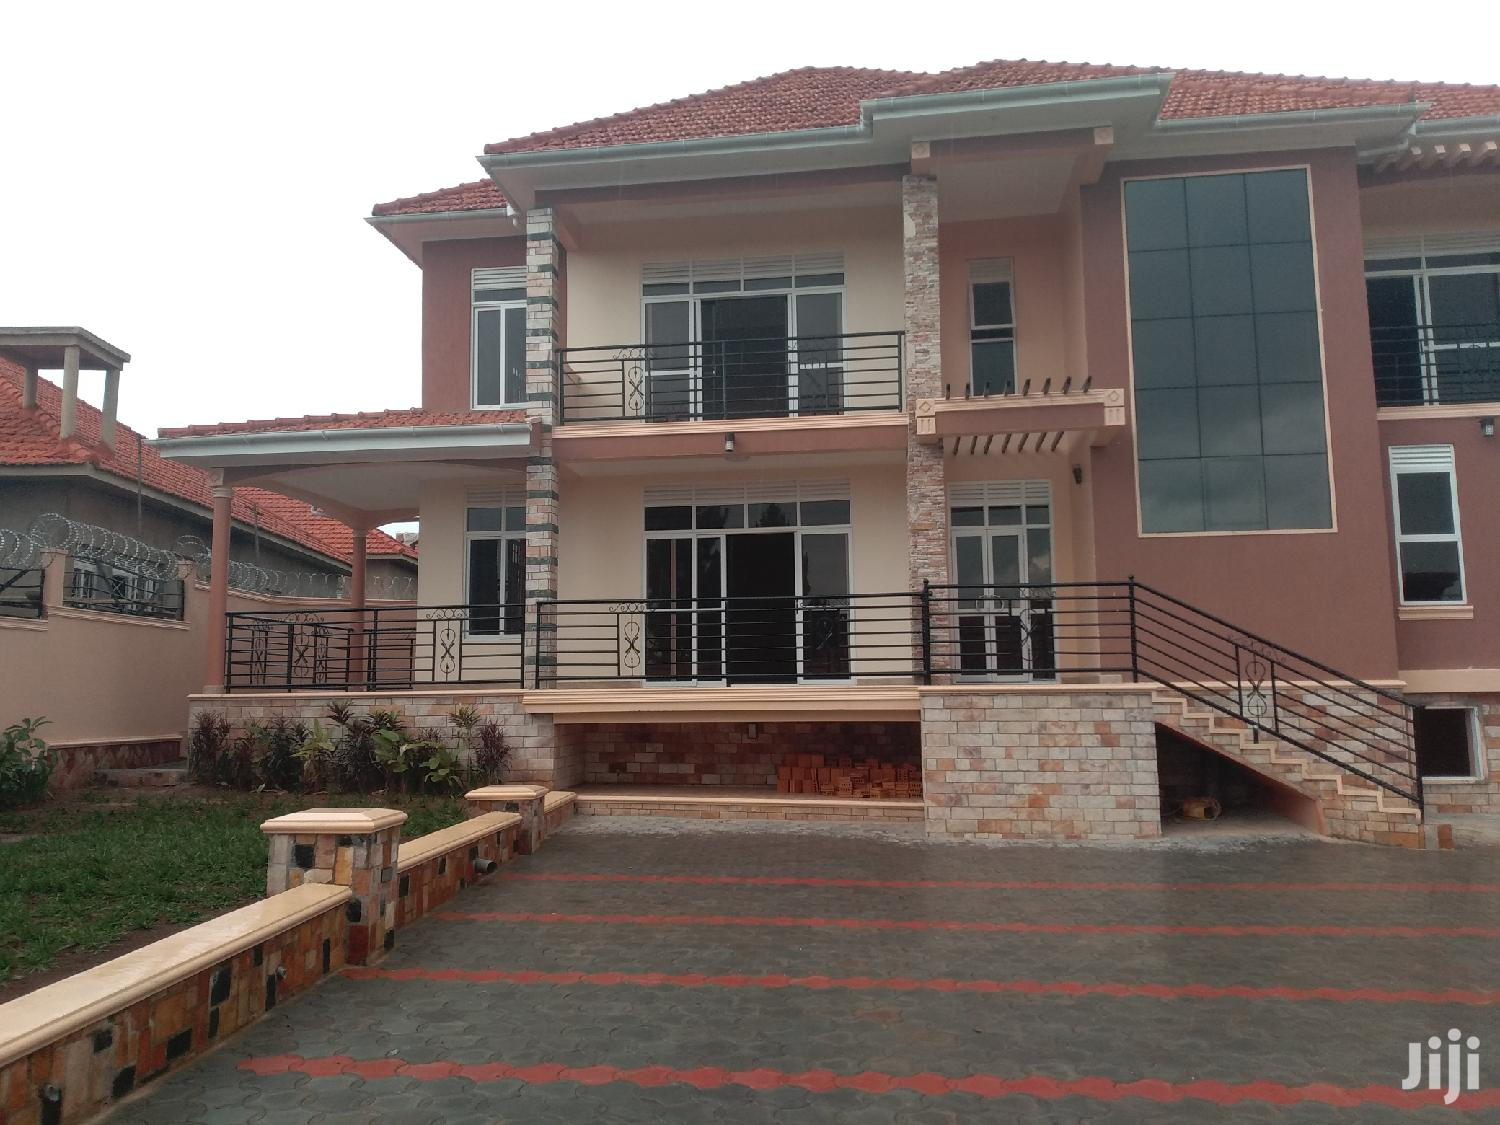 Affordable Home for Sale in Kira With Ready Land Title